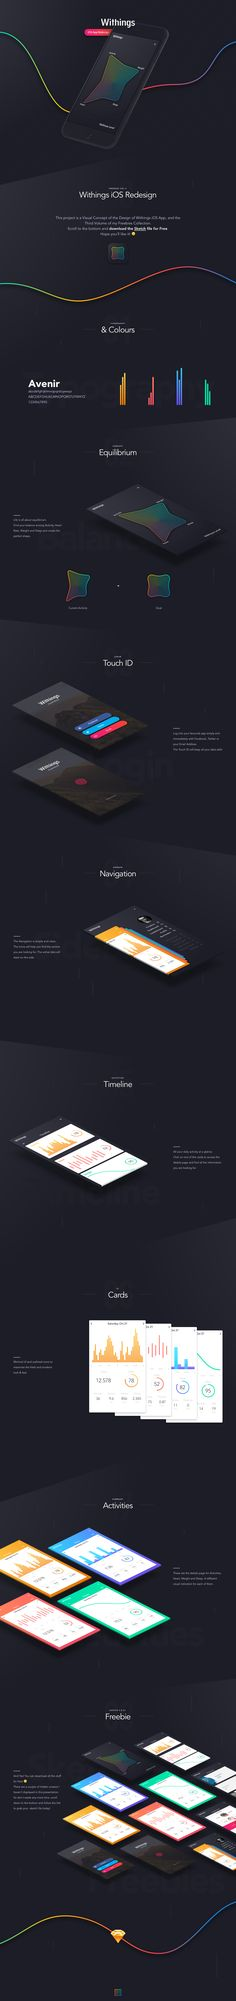 Withings iOS Redesign ~ Freebies Vol.3 on Behance